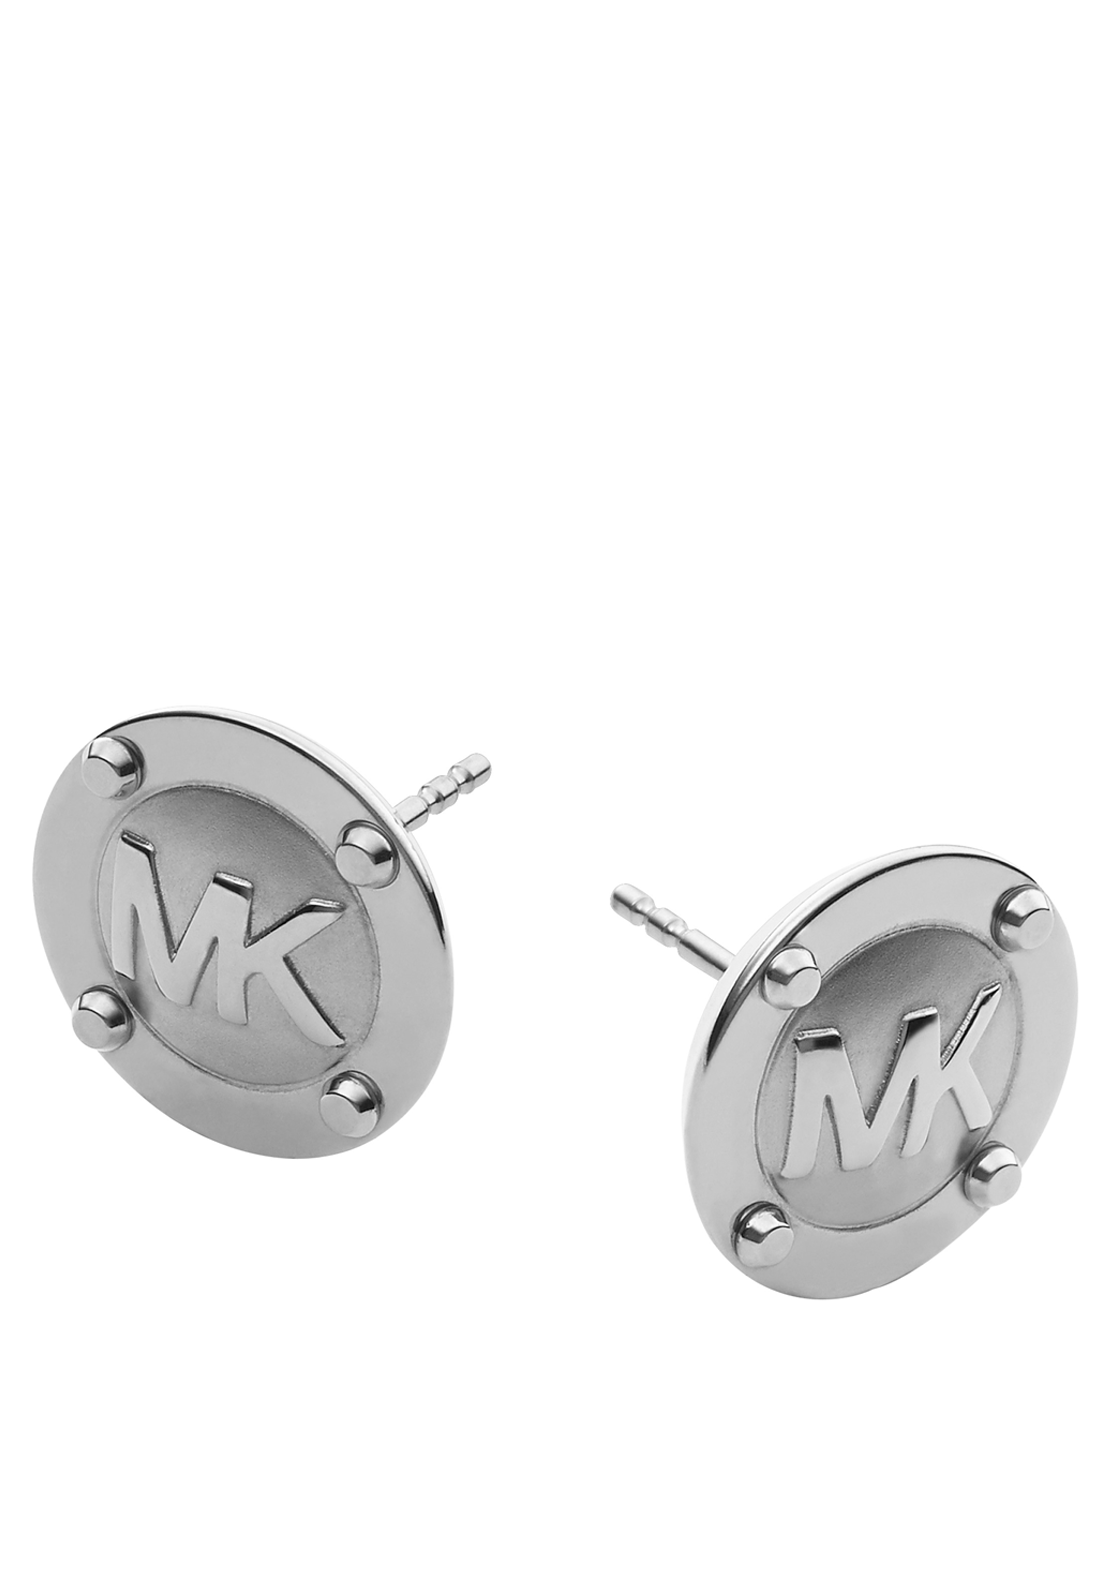 Michael Kors Womens Branded Button Stud Earrings, Silver